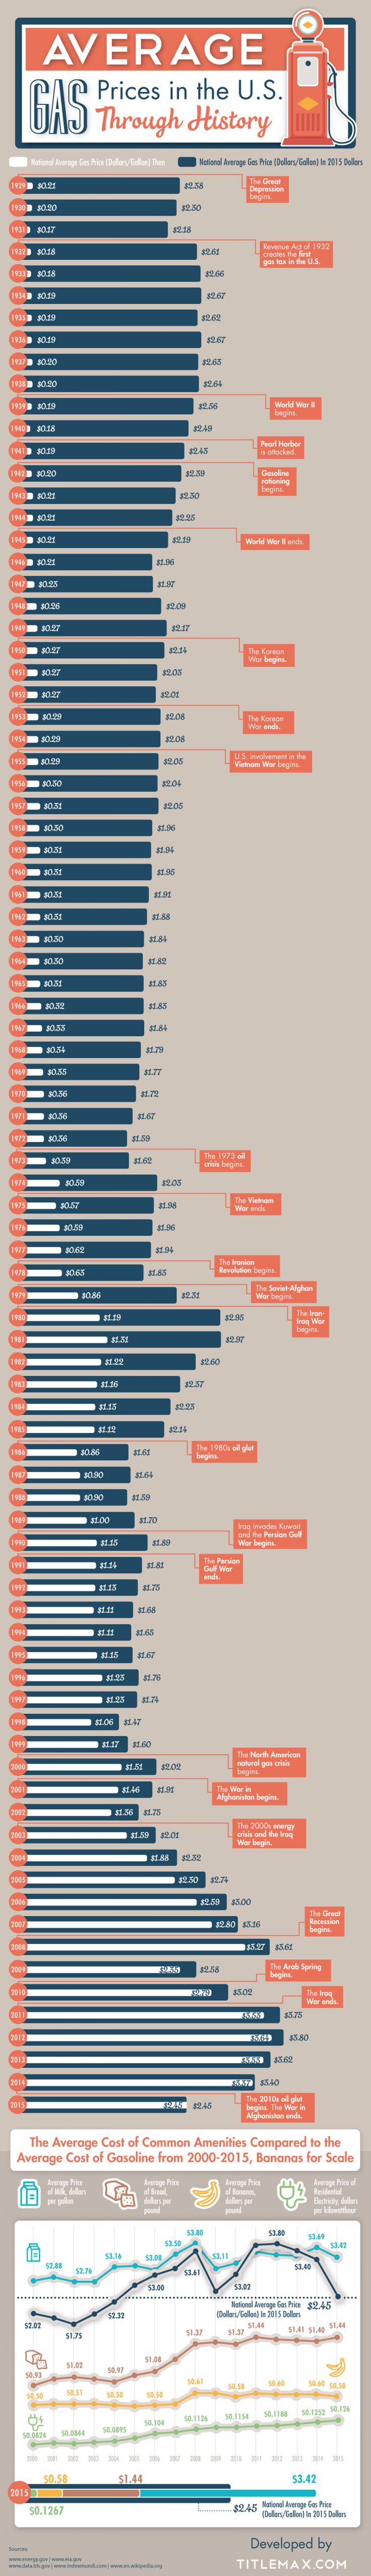 Average Gas Prices in the U.S. Through History Infographic